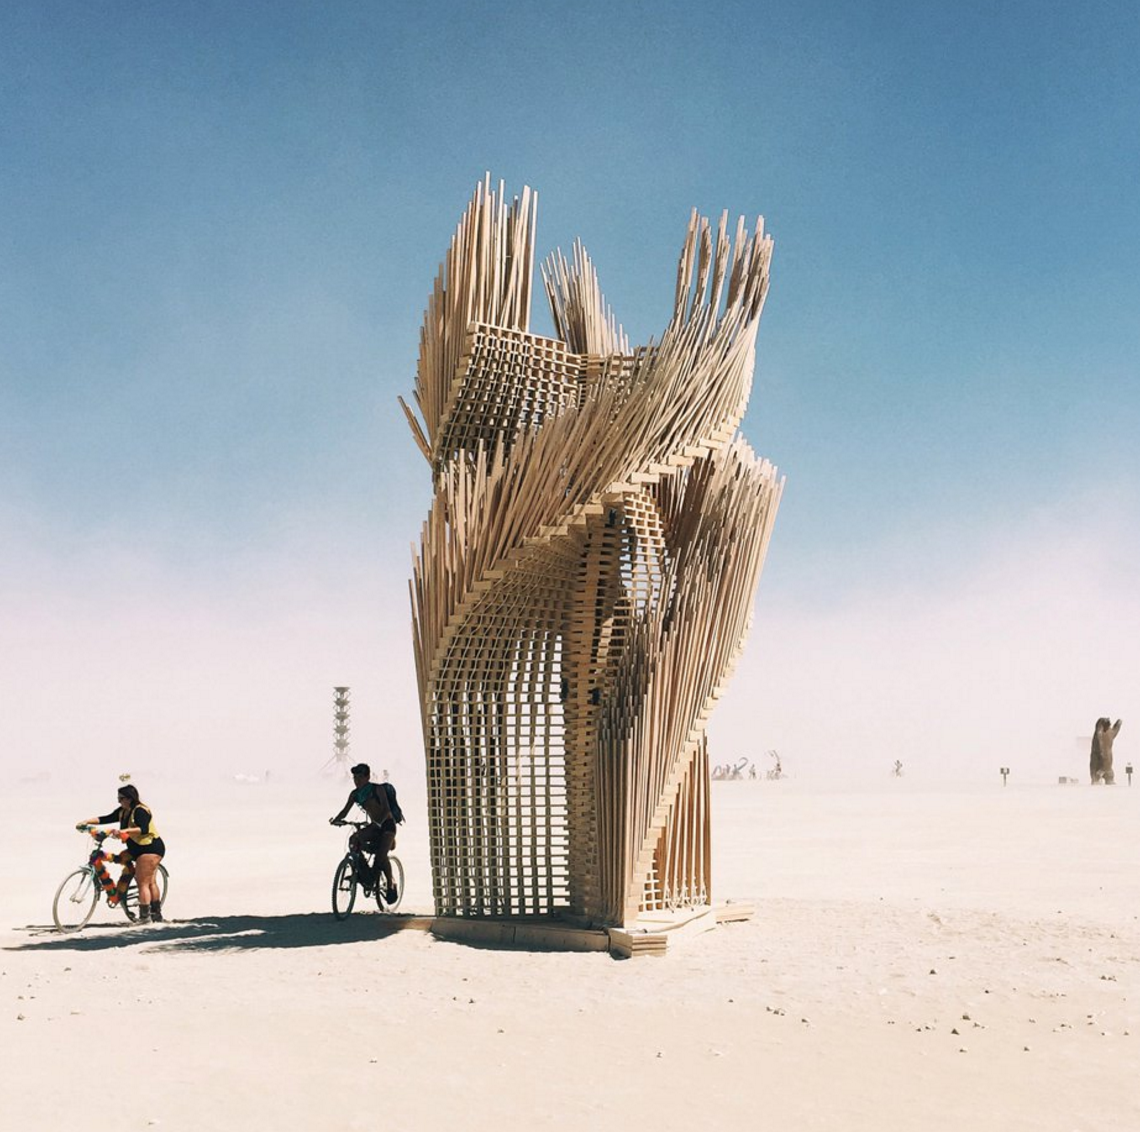 Art installation at Burning Man